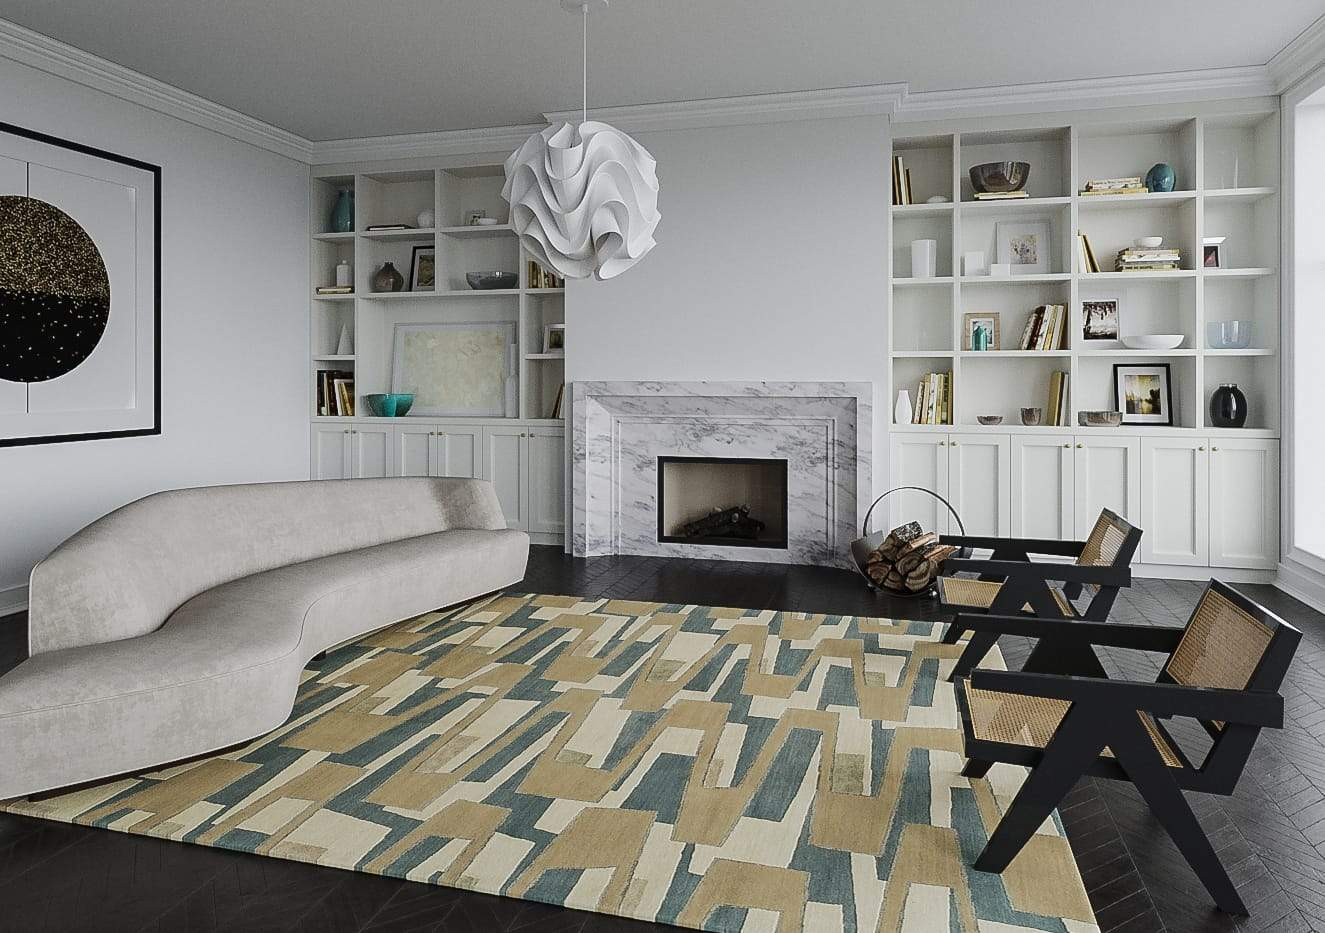 Installation shot of Zigzaggery Quarry, a hand knotted rug designed by Tufenkian Artisan Carpets. room-image